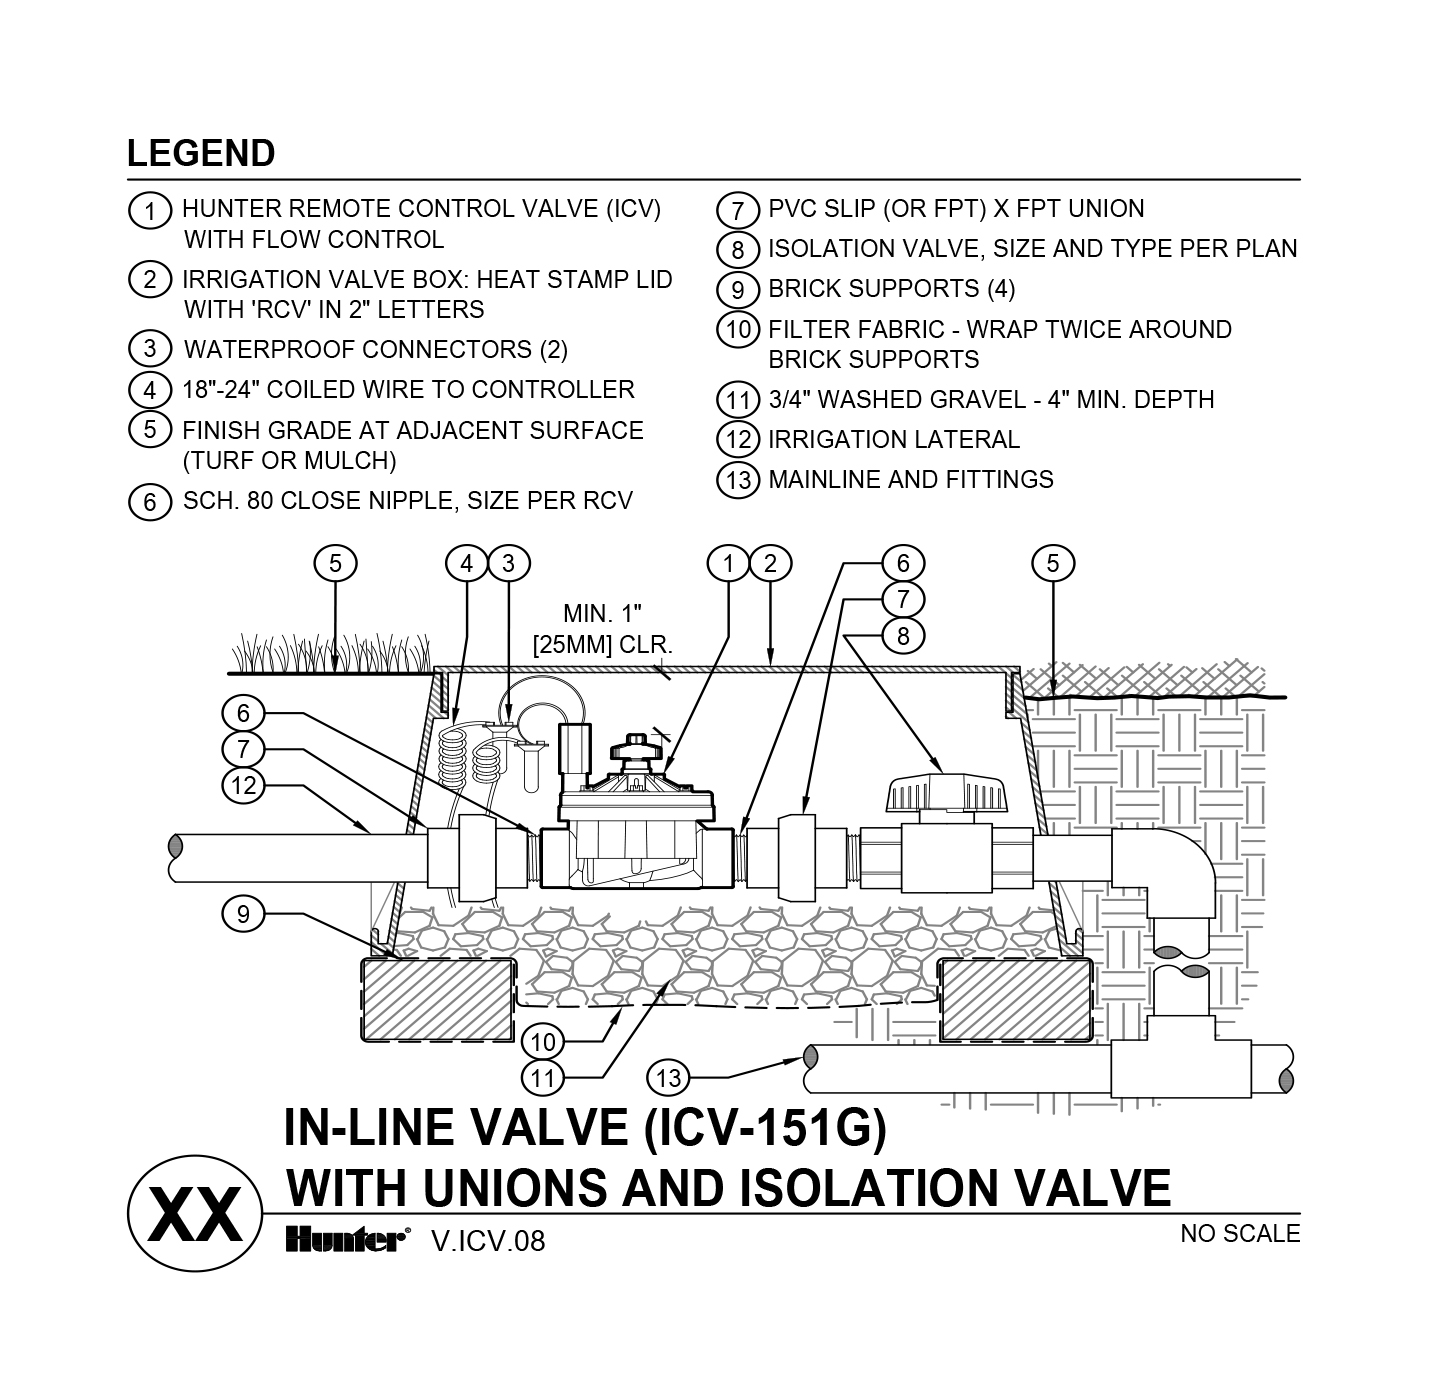 CAD - ICV-151G with unions and shutoff valve